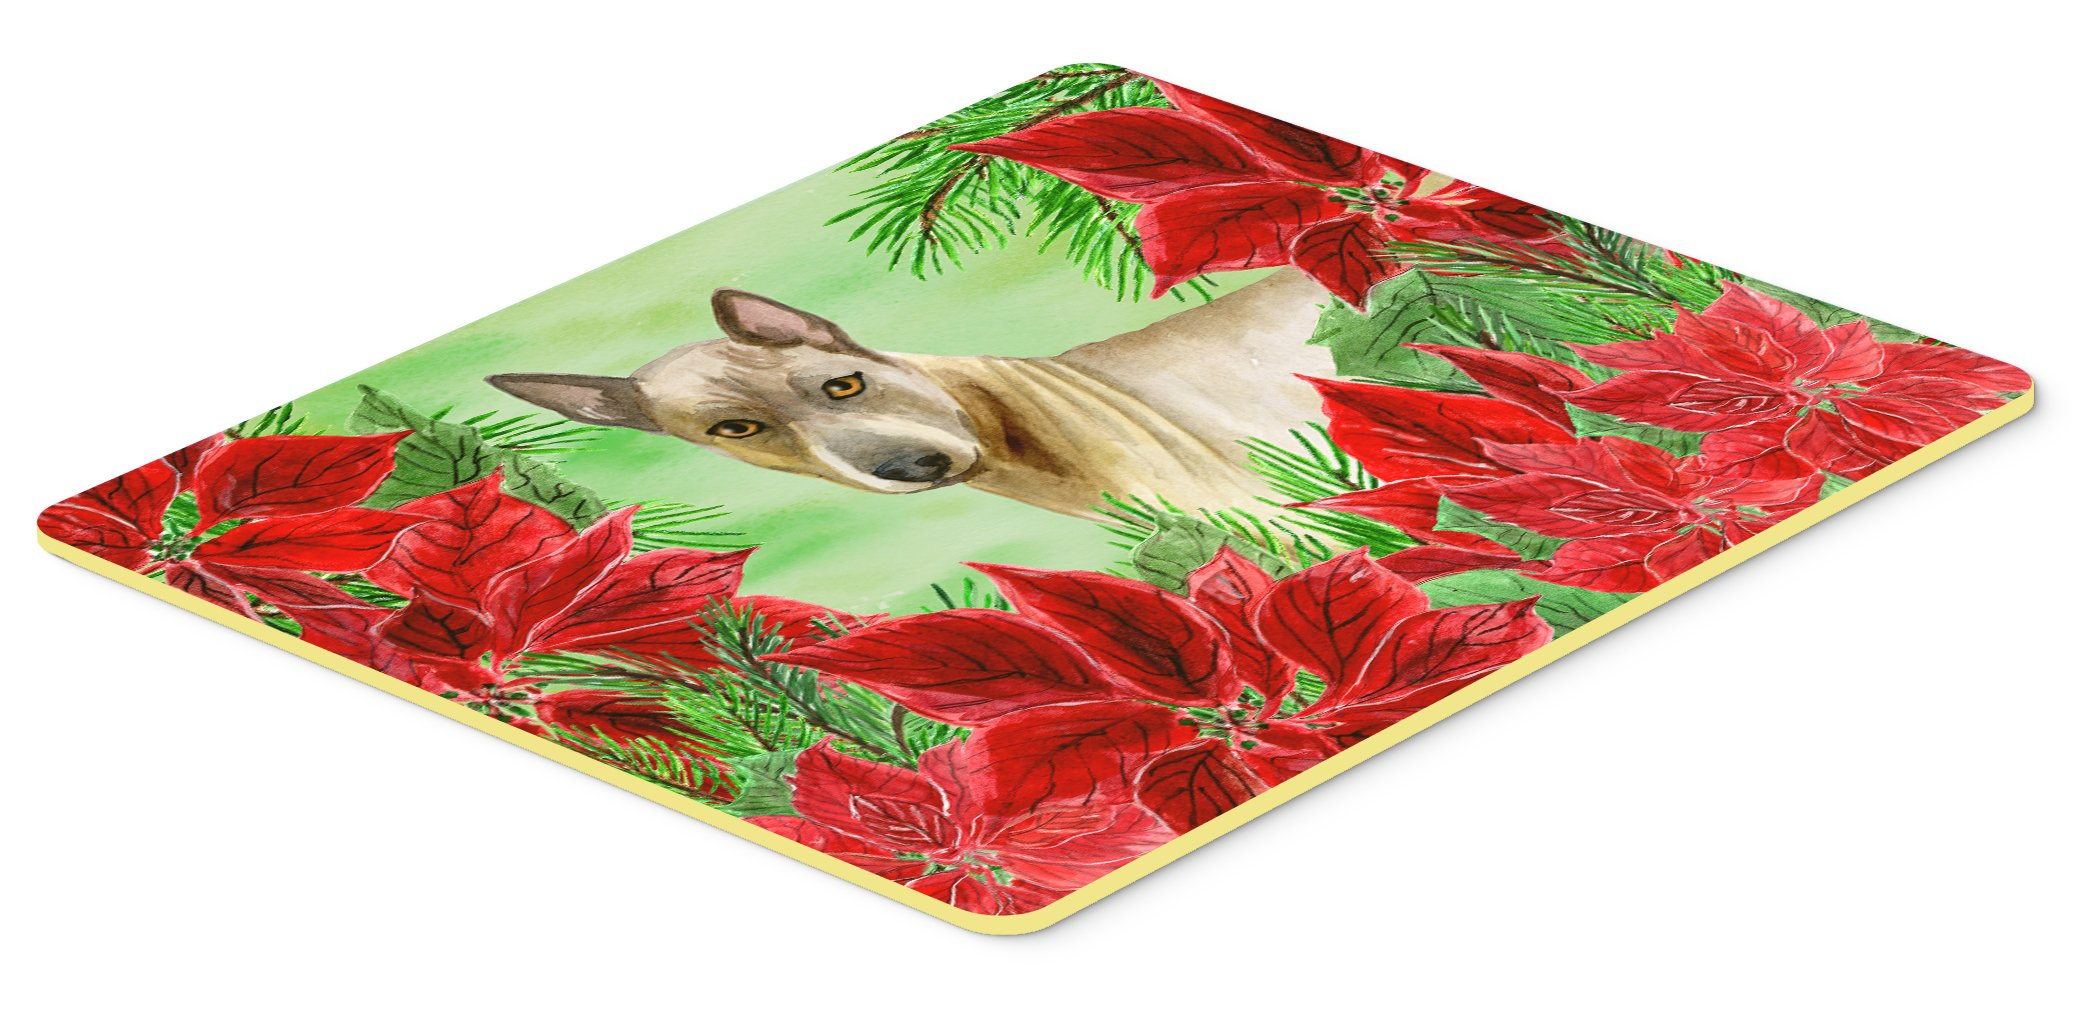 Caroline's Treasures CK1328CMT Thai Ridgeback Poinsettas Kitchen Mat, 20 X 30'', Multicolor by Caroline's Treasures